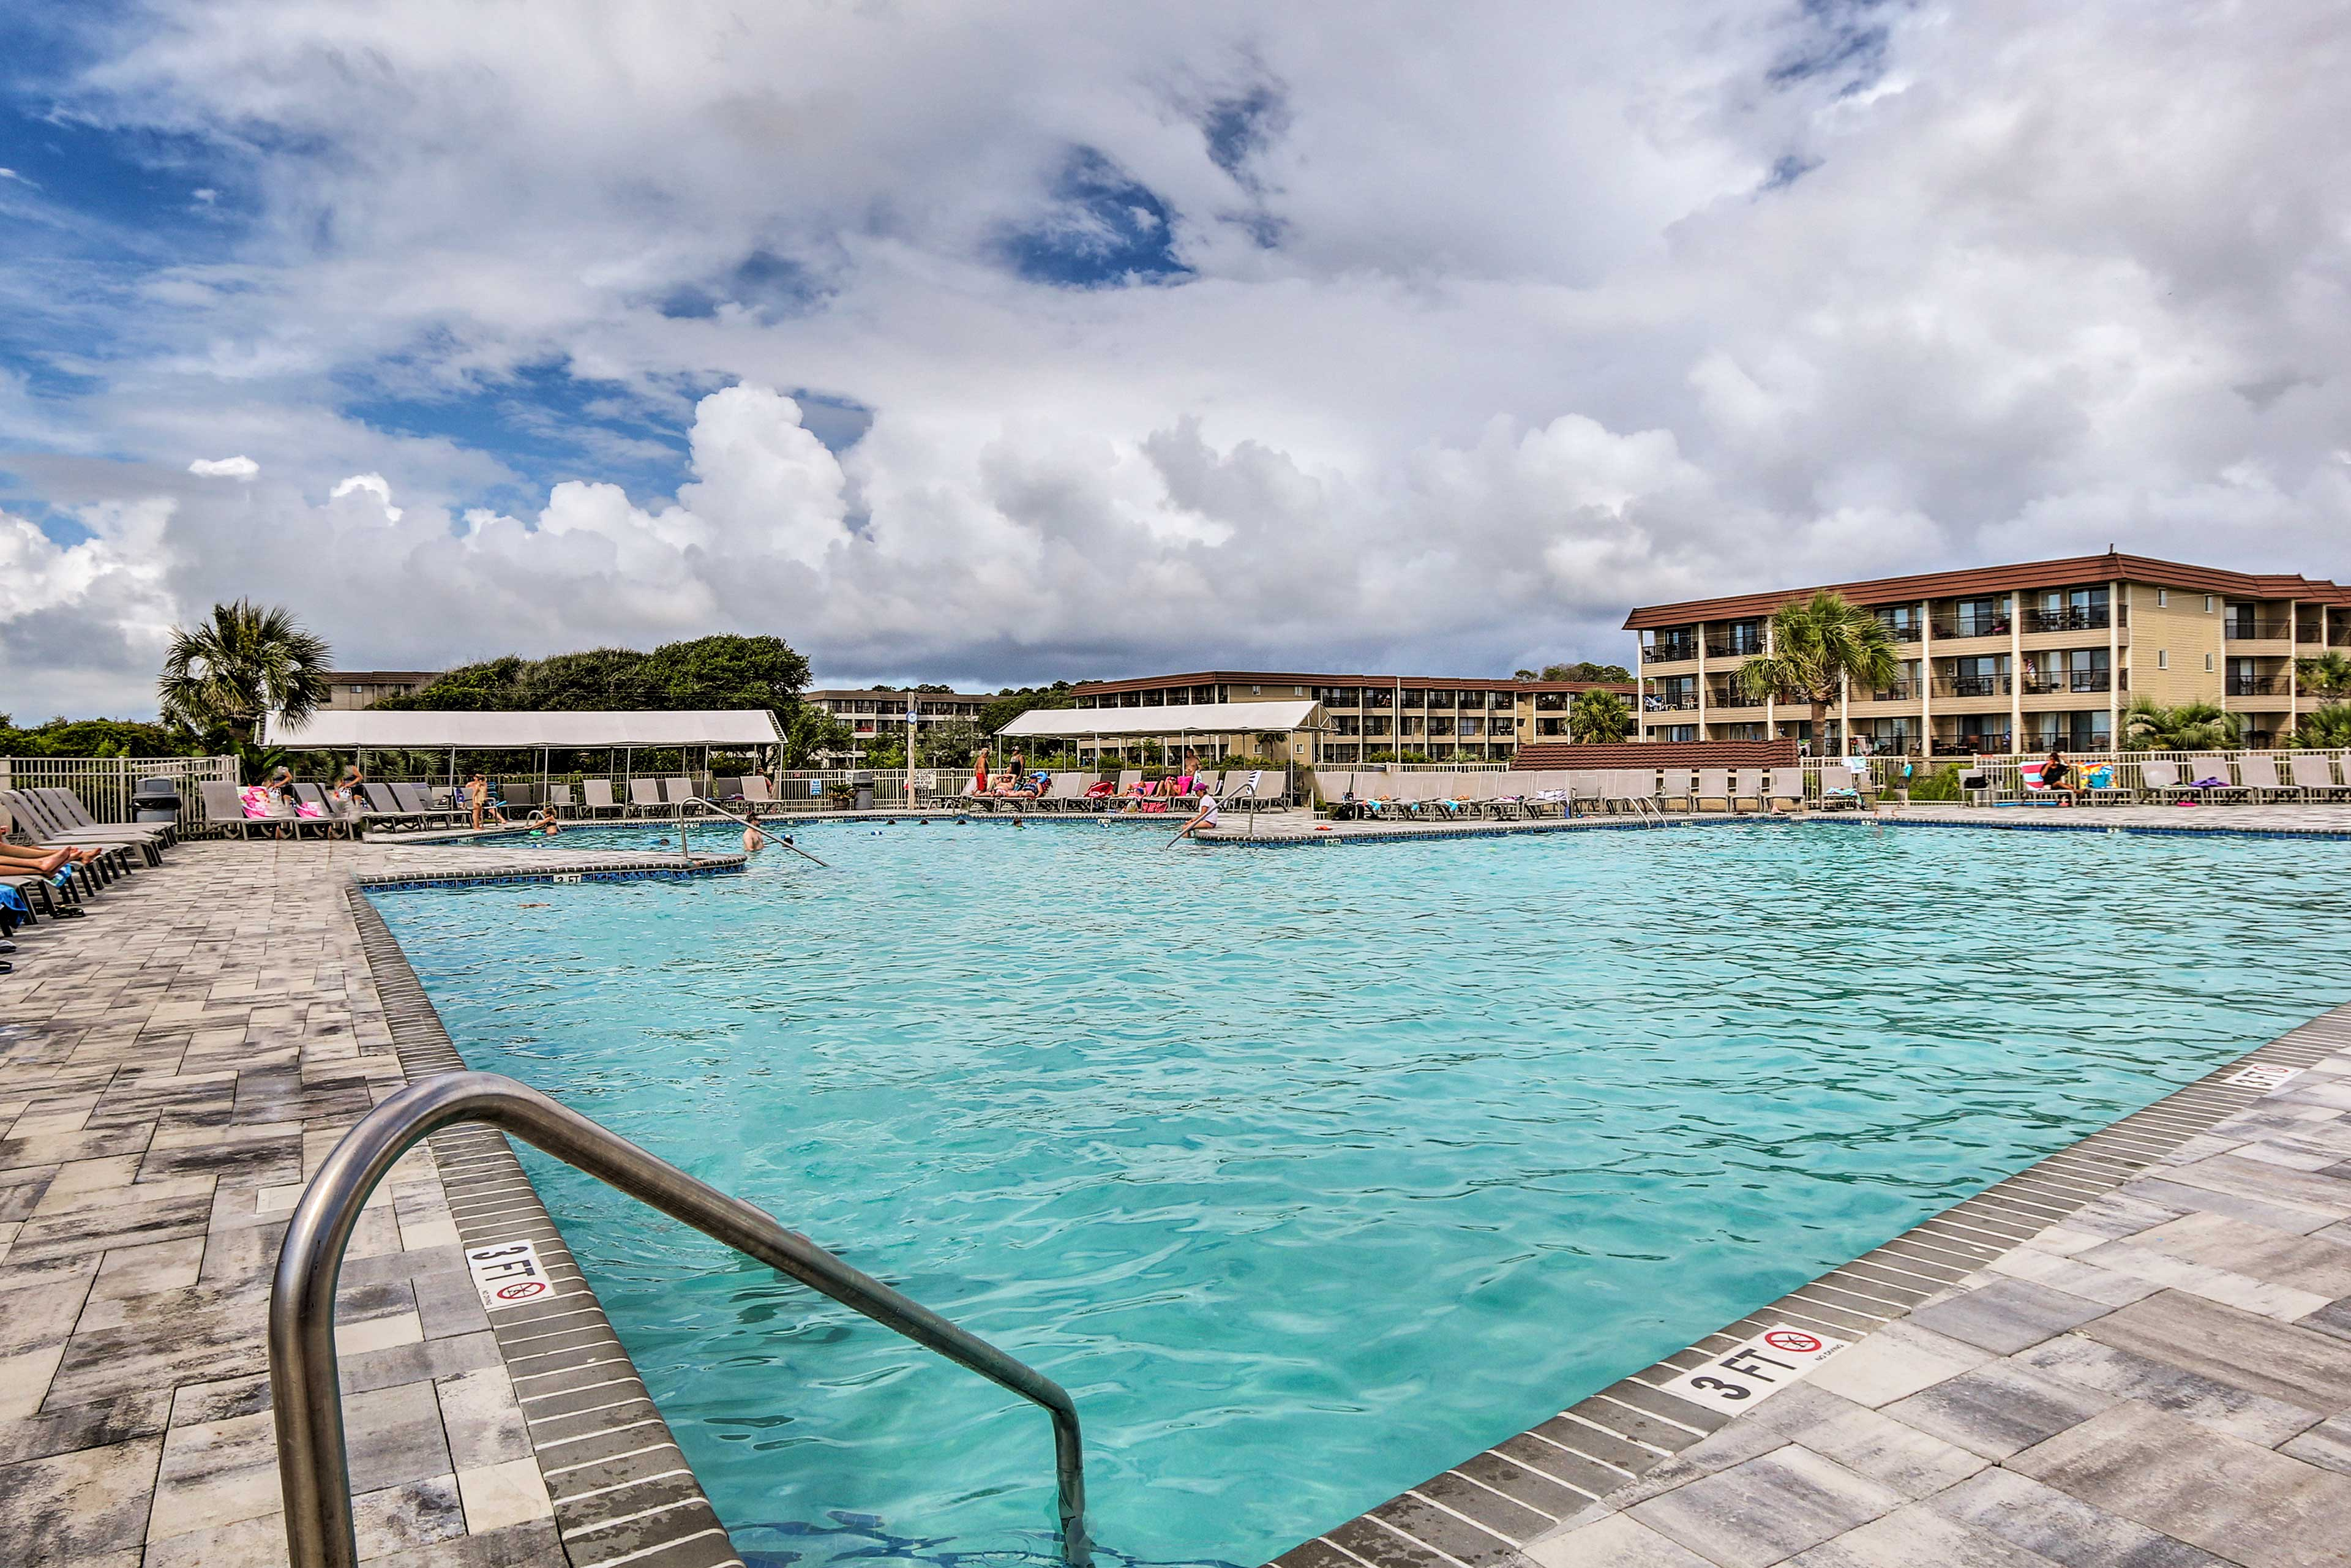 Take a dip in the expansive shared pool to cool off!